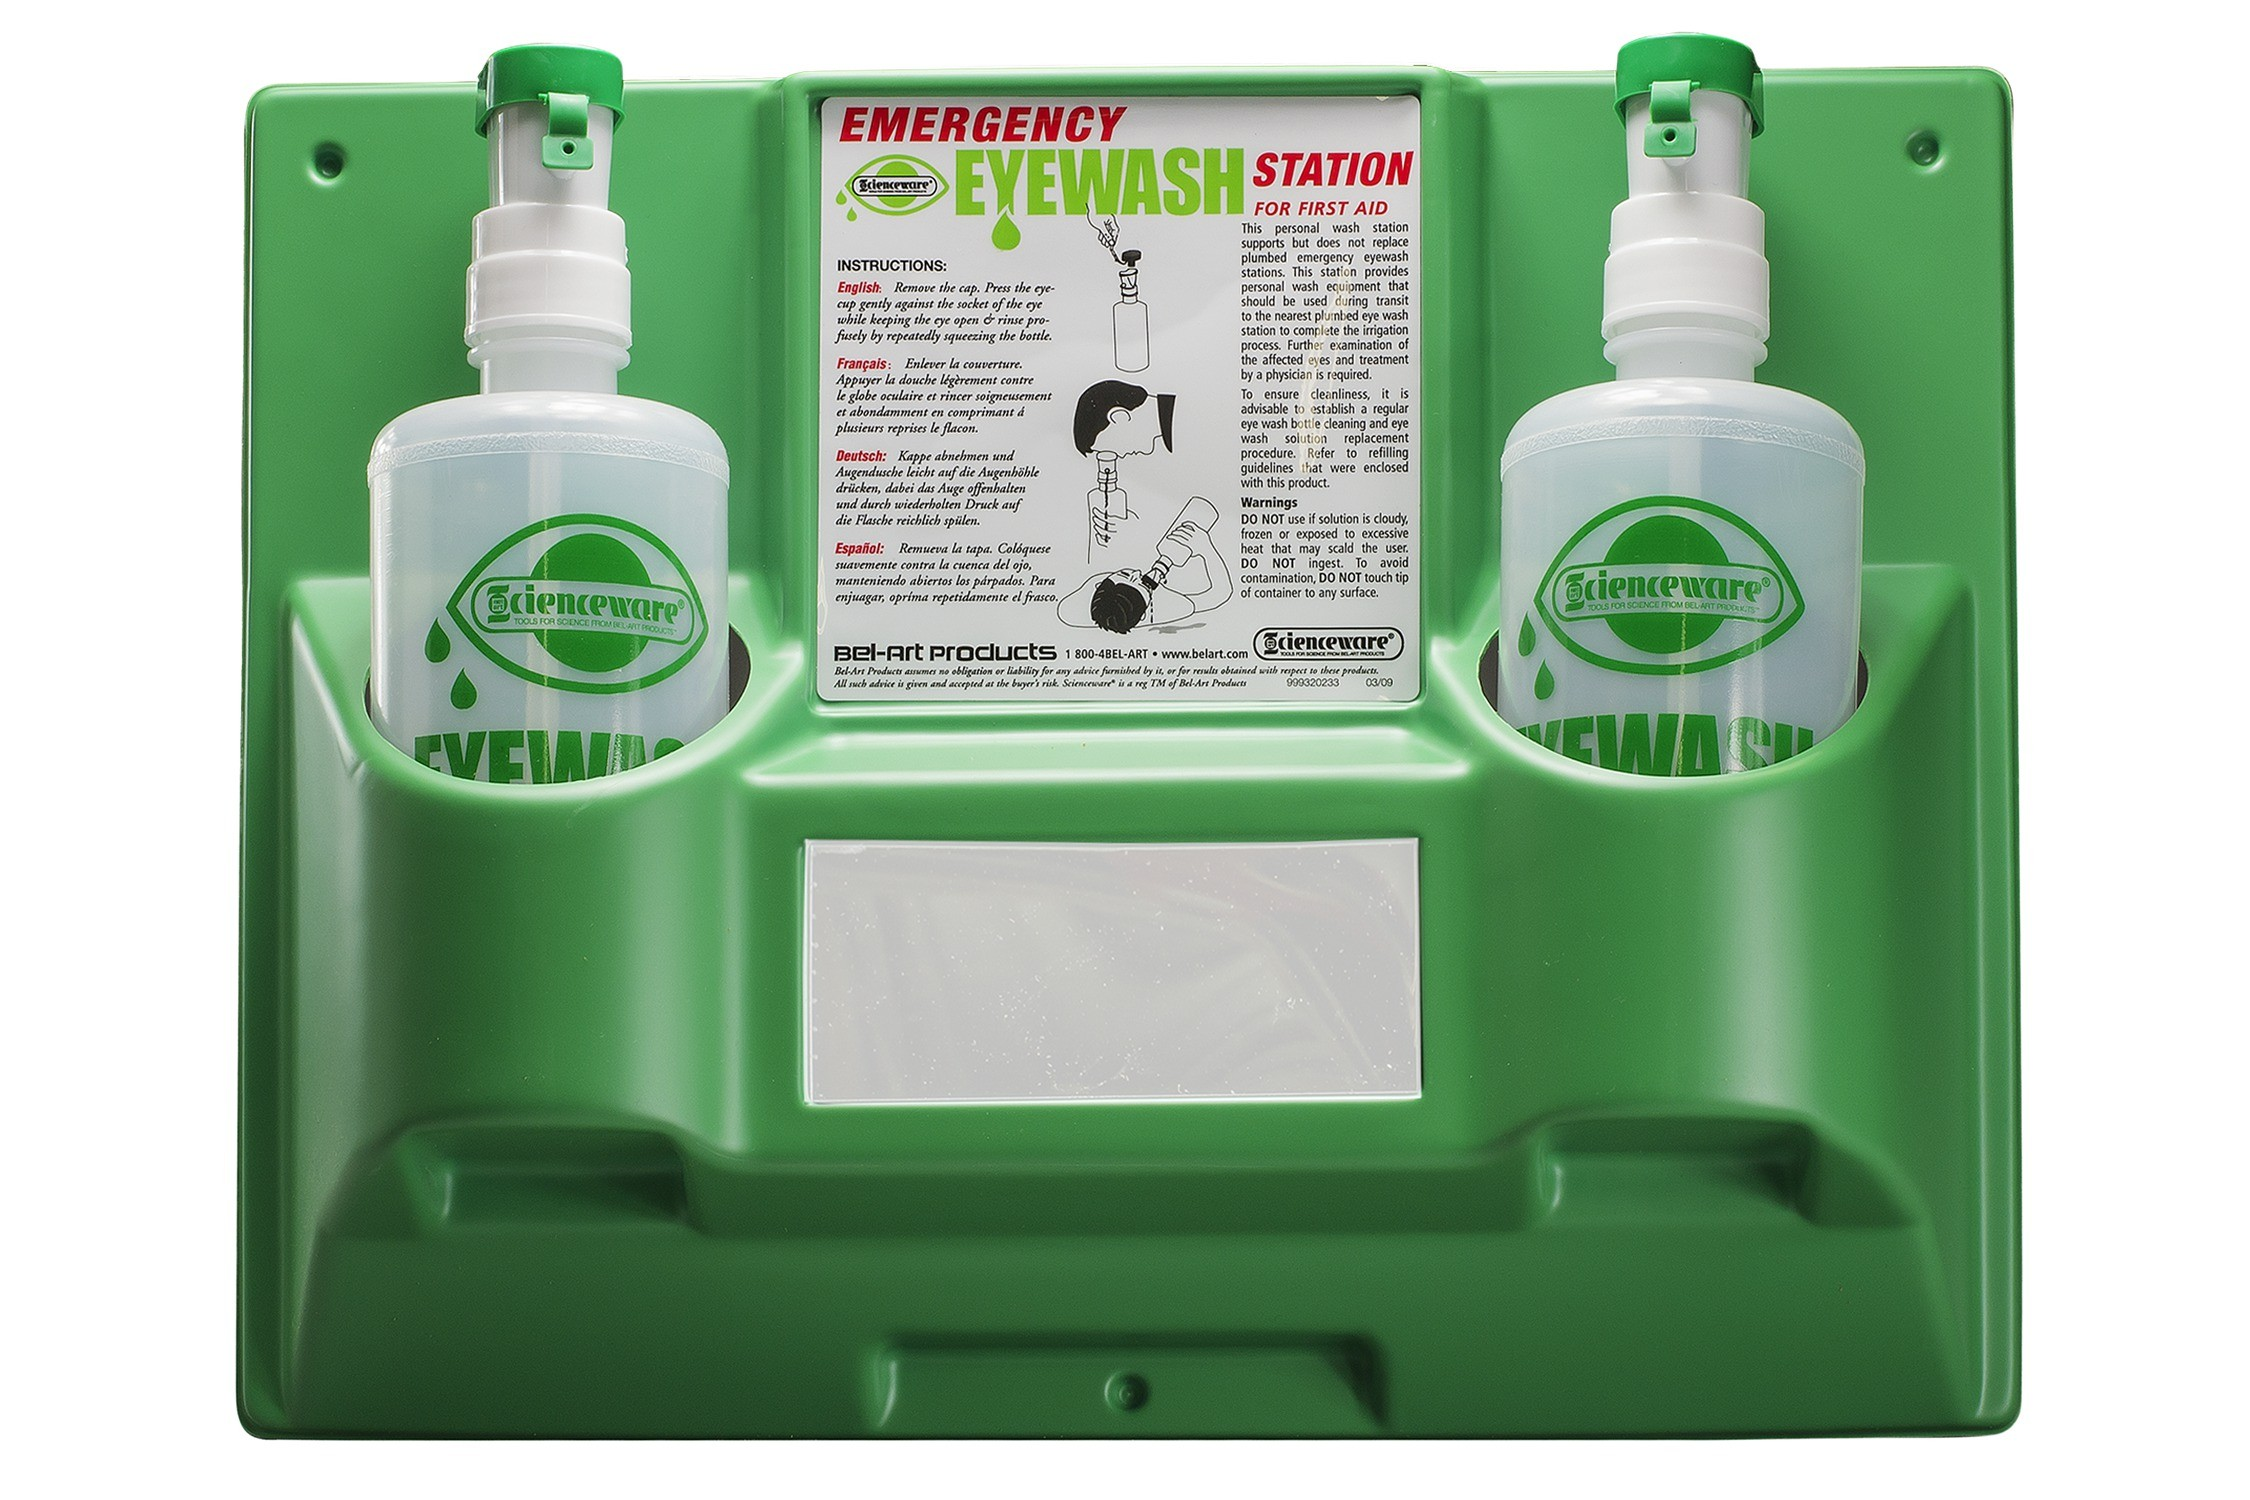 Emergency Eye Wash Safety Stations